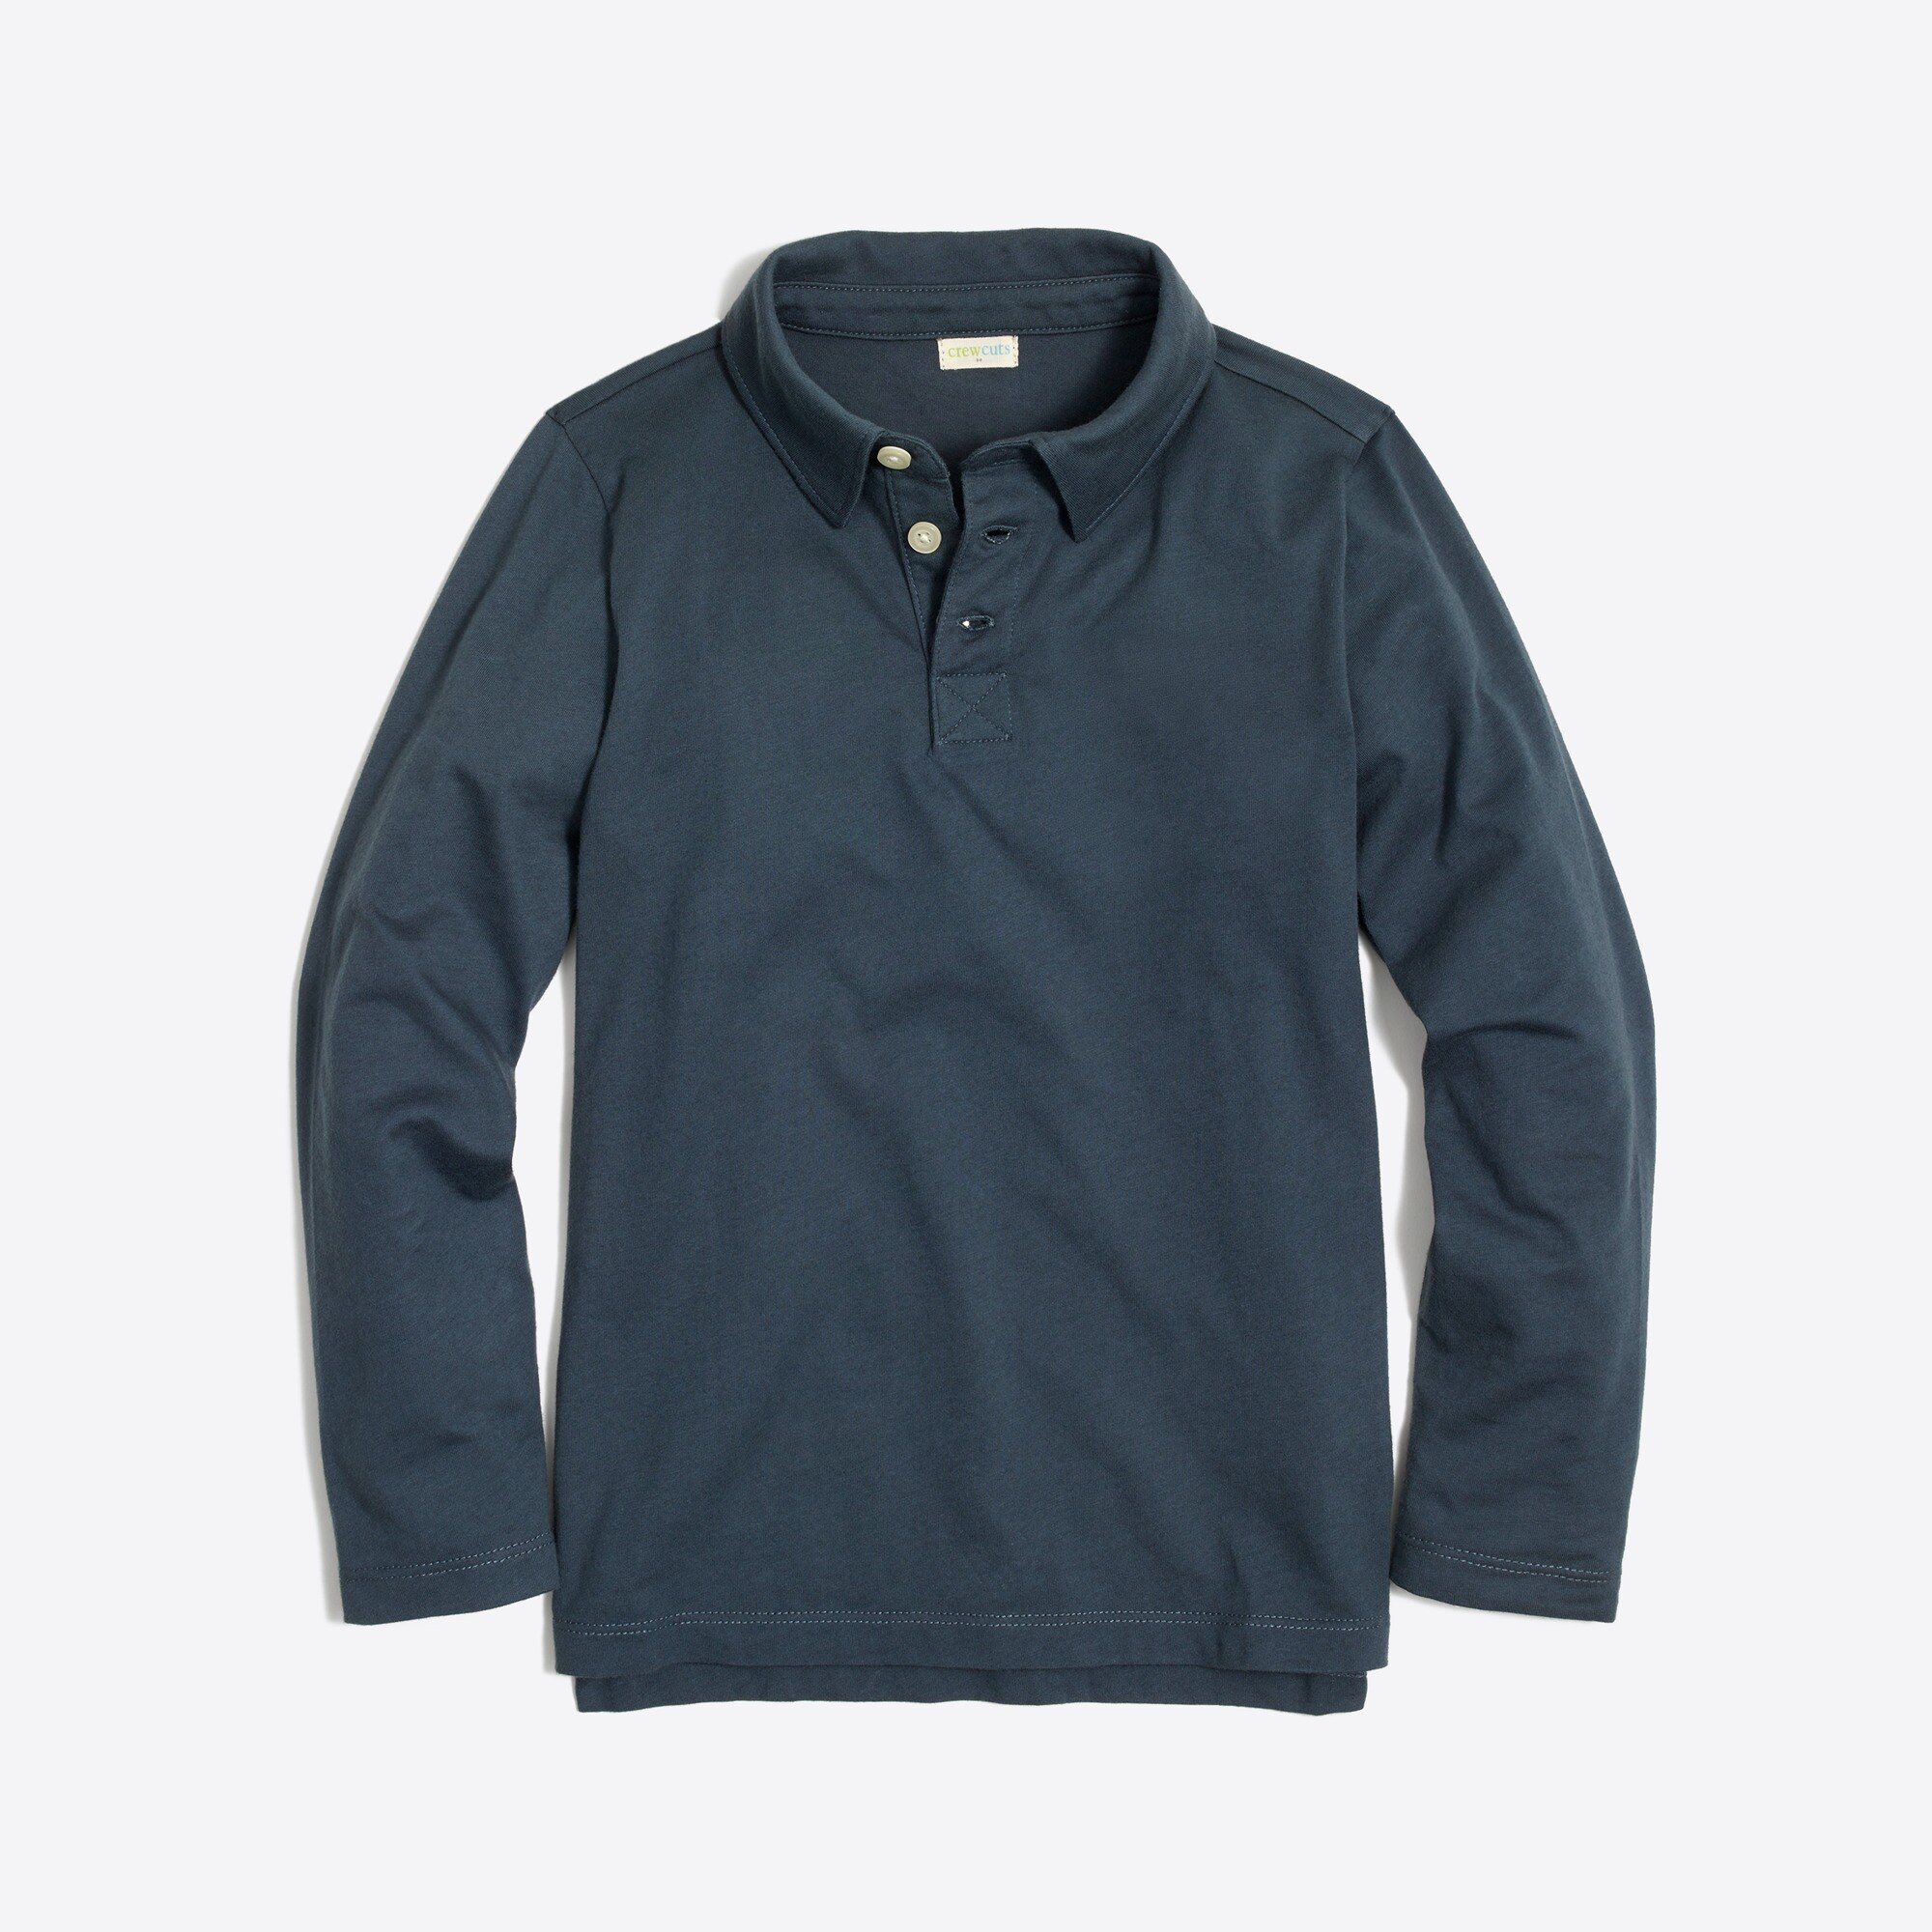 Image 1 for Boys' long-sleeve polo shirt